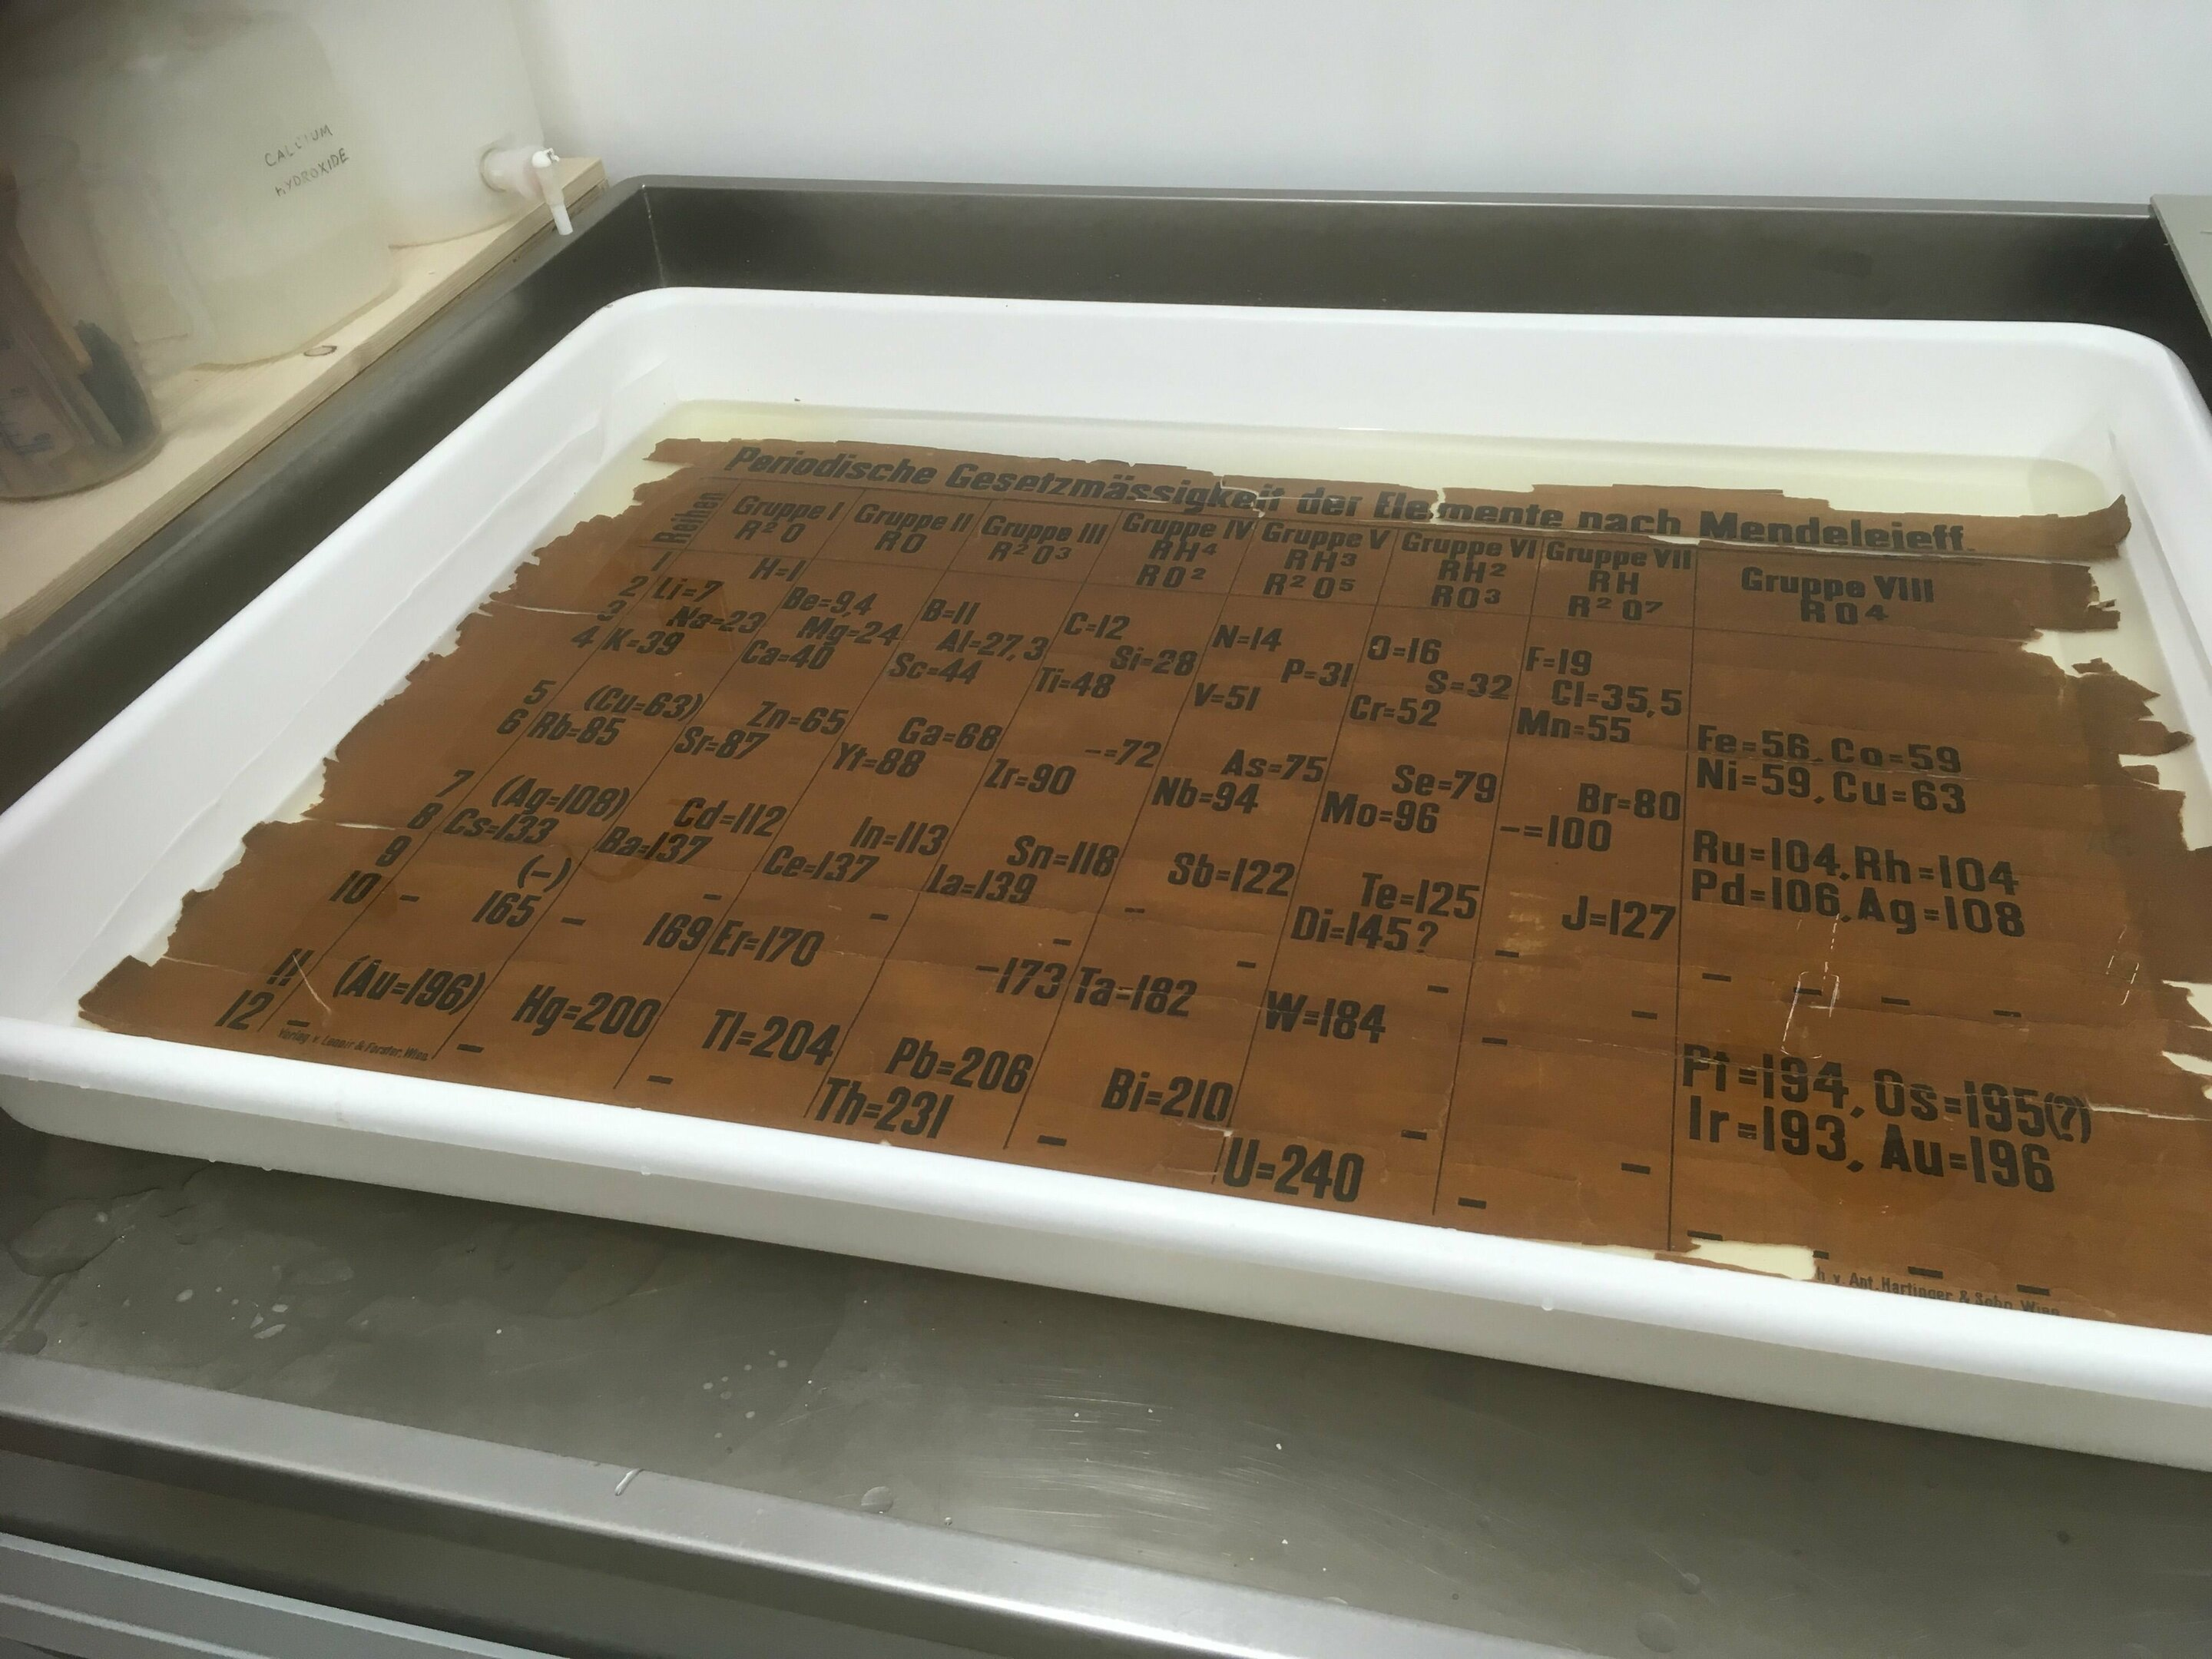 Blog Archive » World's oldest classroom periodic table found at St. Andrews